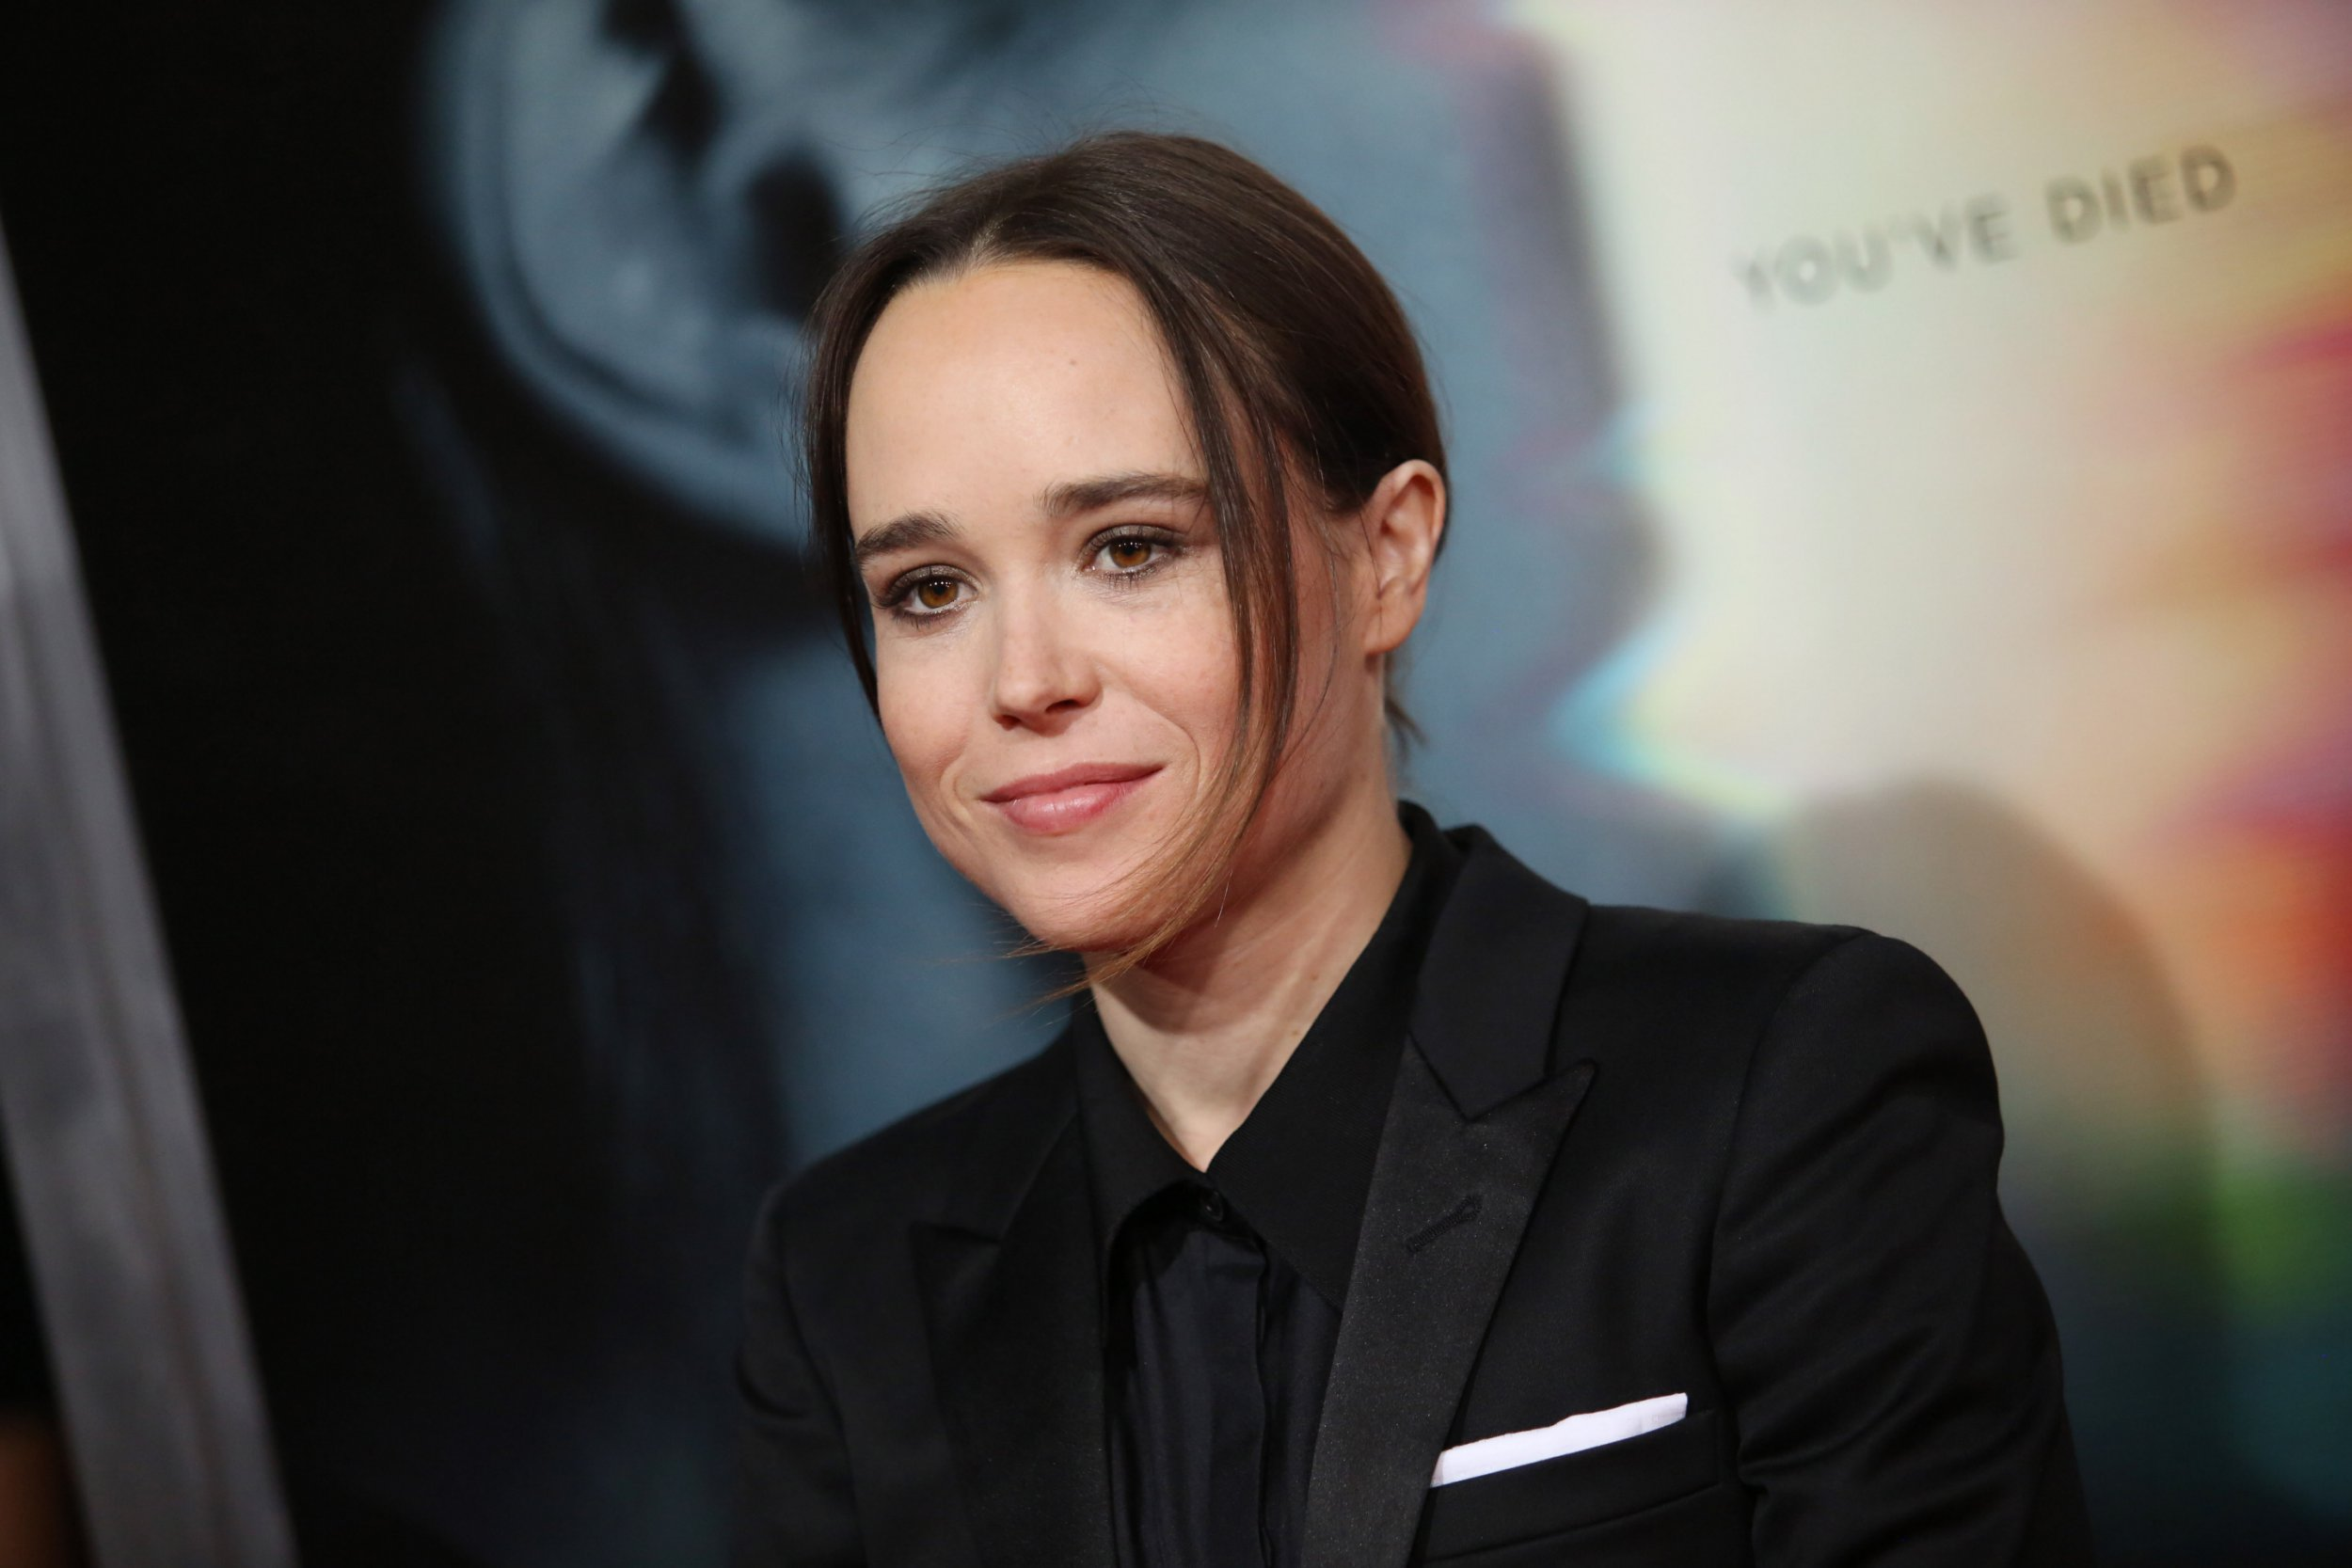 'People are queerphobic and transphobic': Ellen Page says we have 'so far to go' with LGBTQ rights